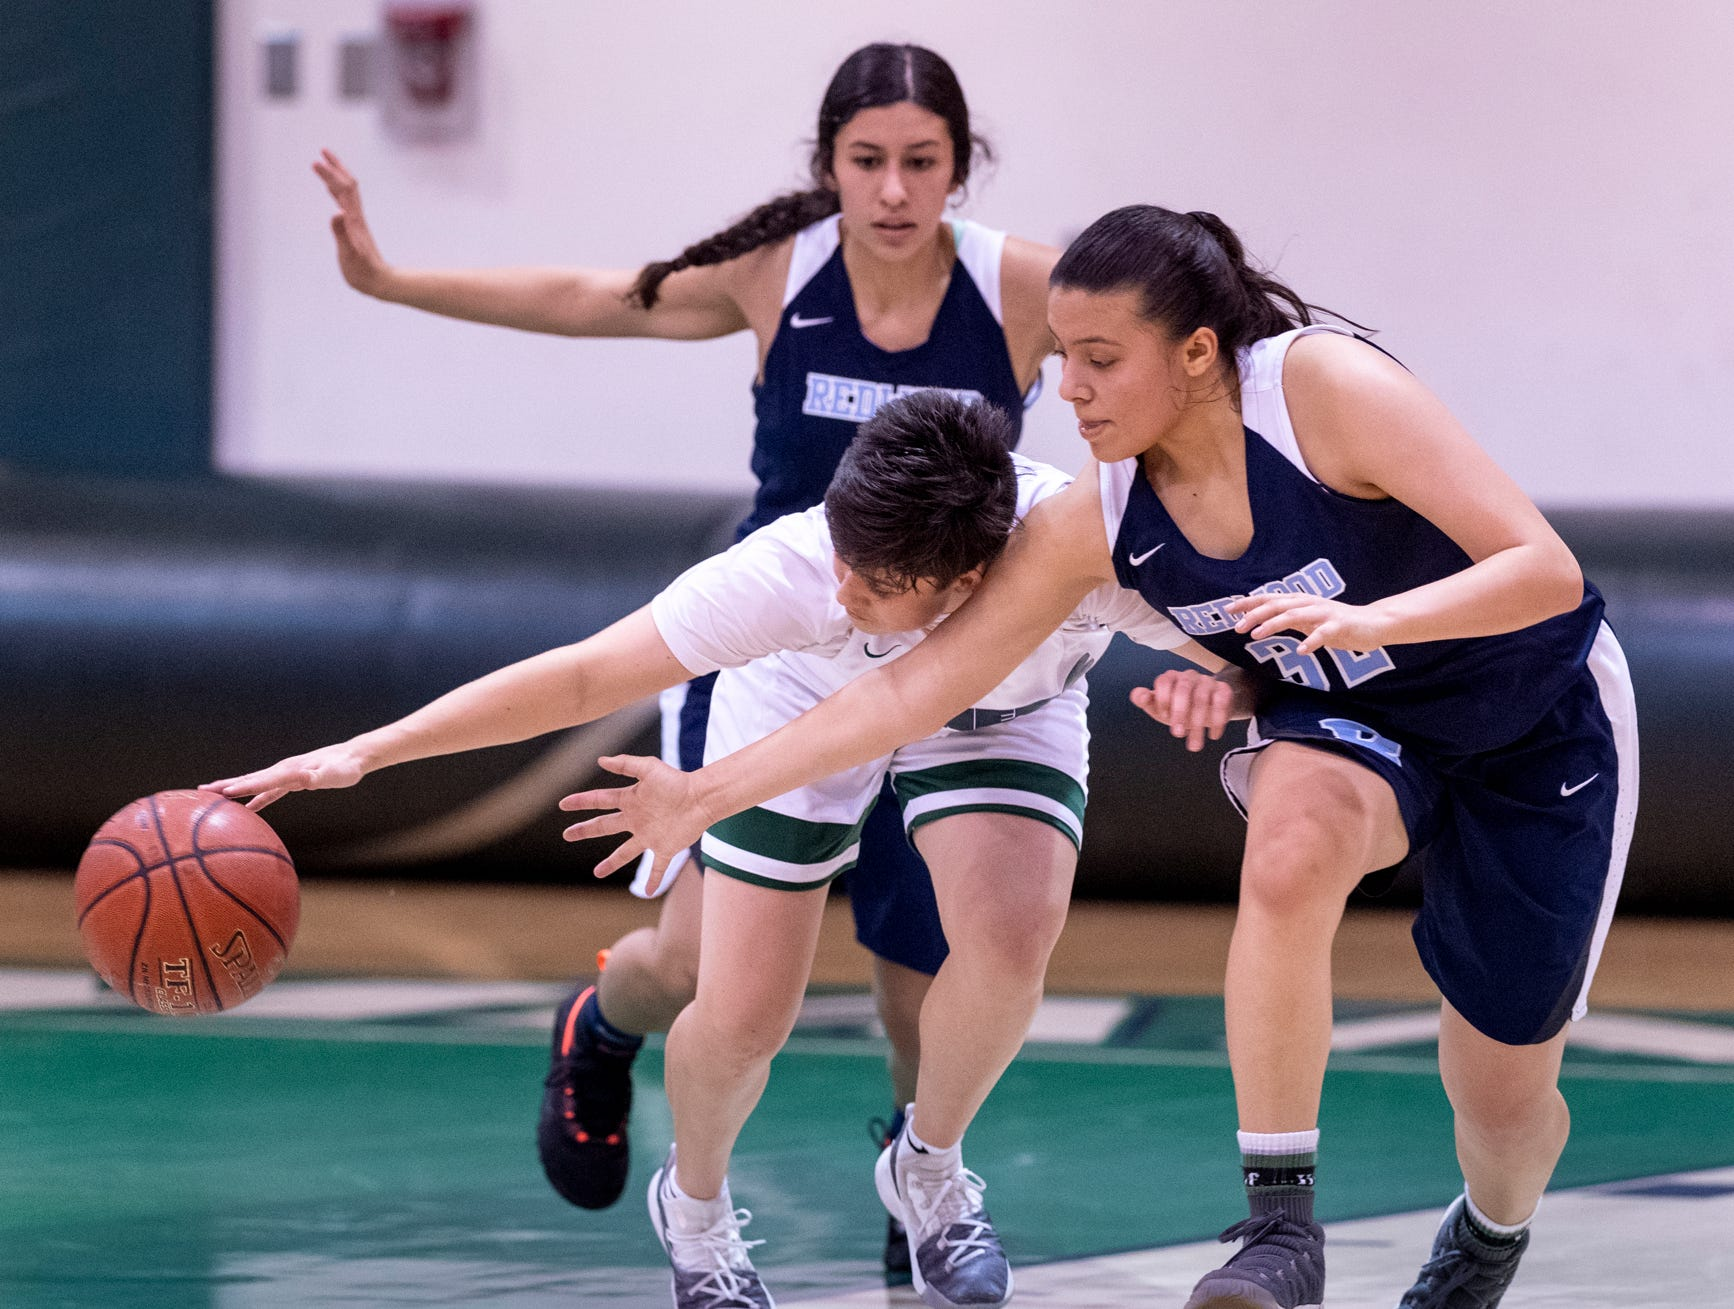 Redwood's Janessa Haro, right, and El Diamante's Lucy Tazio scramble for a loose ball in a girls basketball game on Thursday, January 31, 2019.